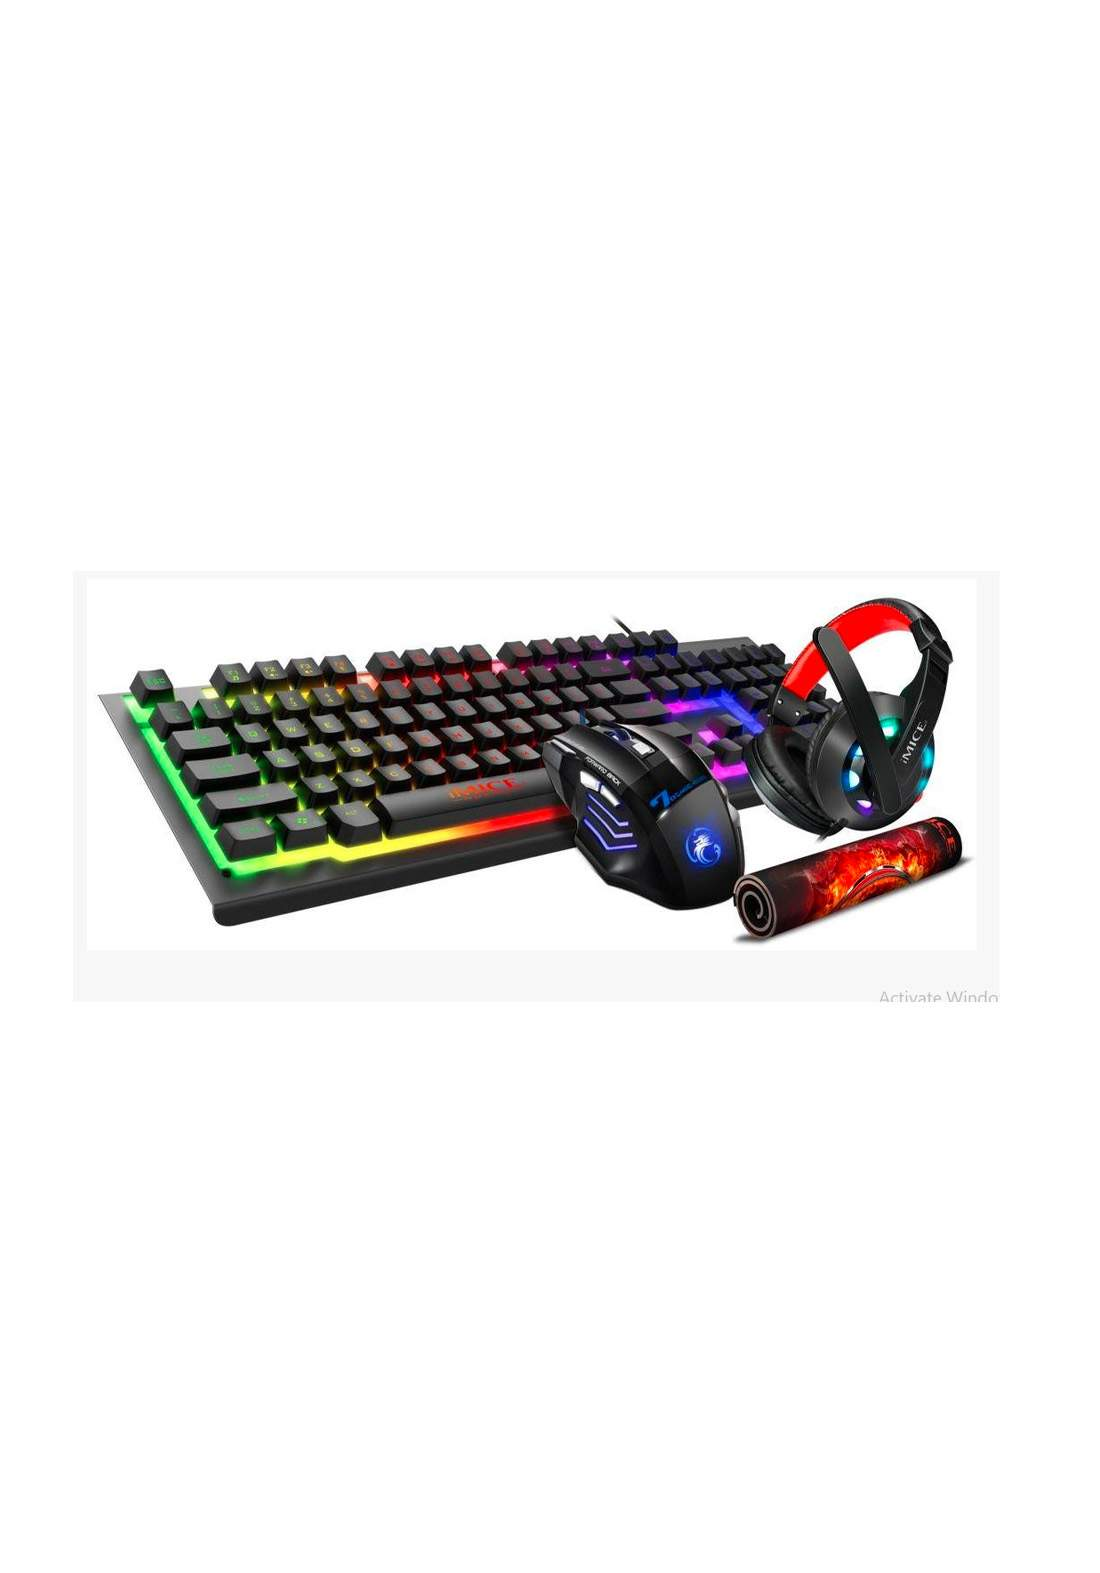 iMICE GK-470 Compo 4 in 1 Gaming Set